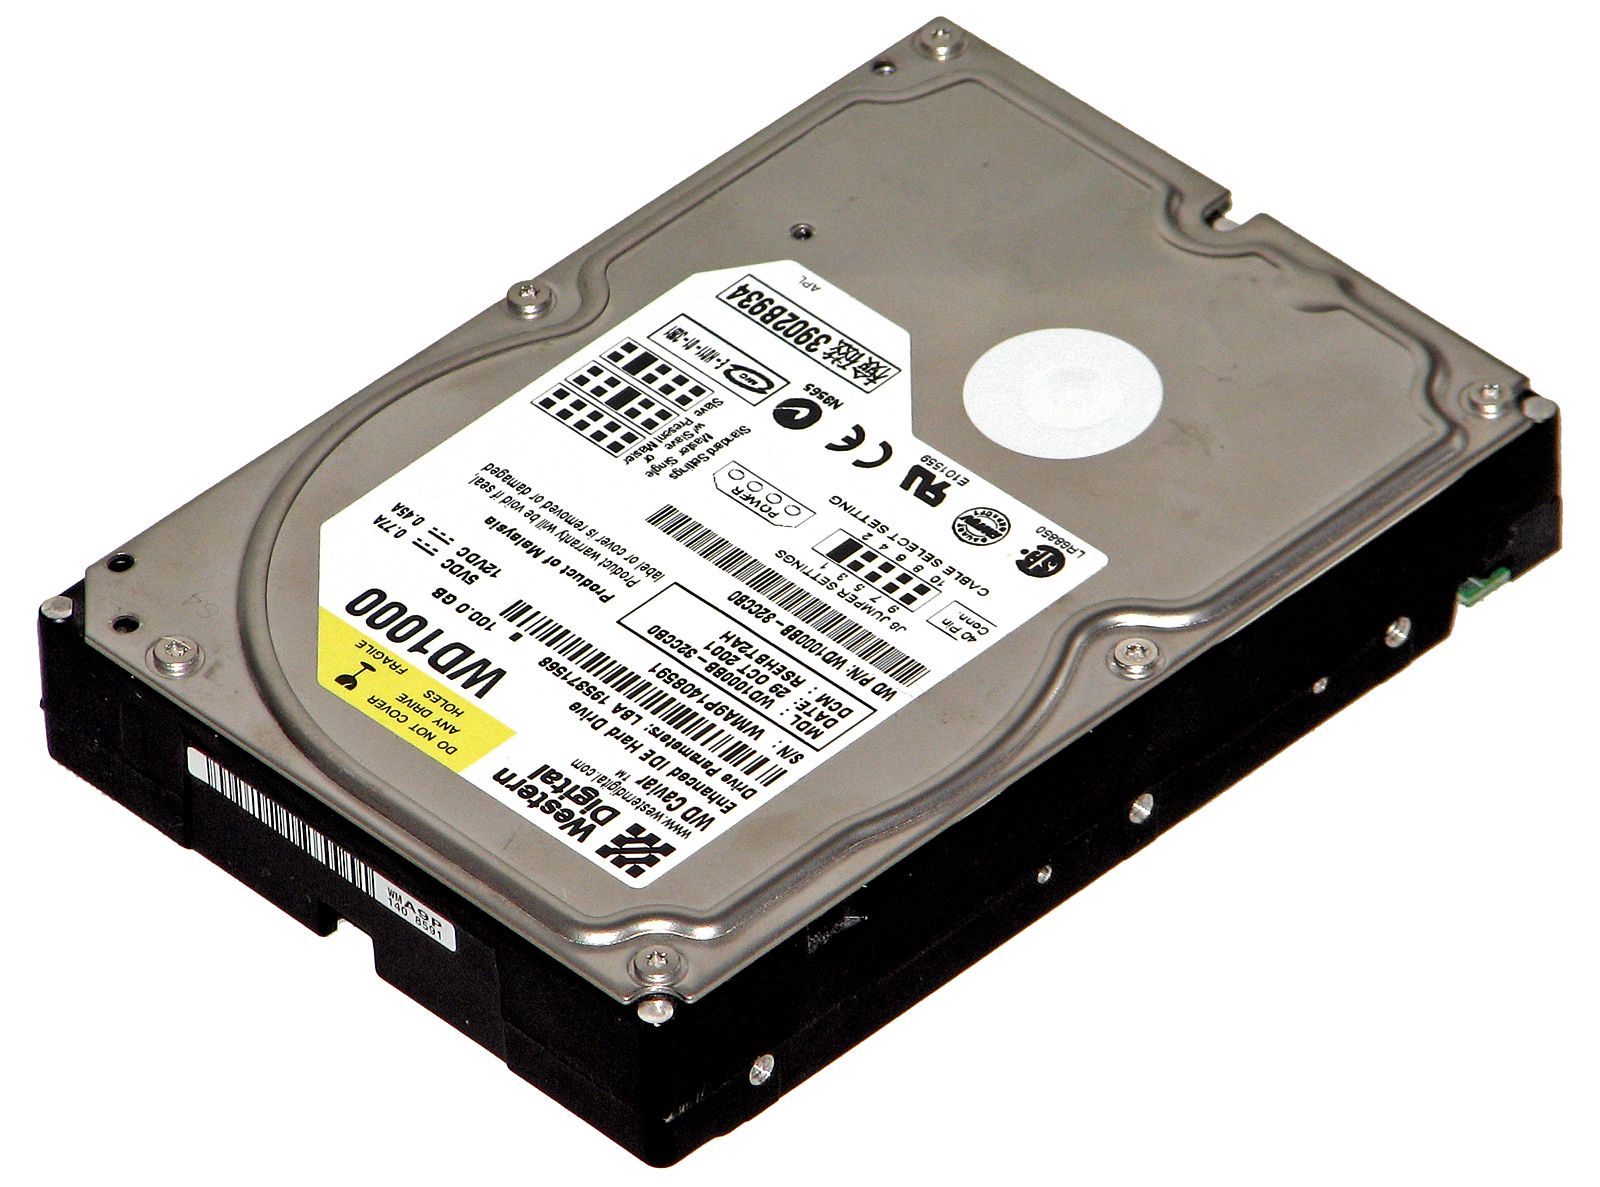 expanding PS4 stock storage with a new hard drive